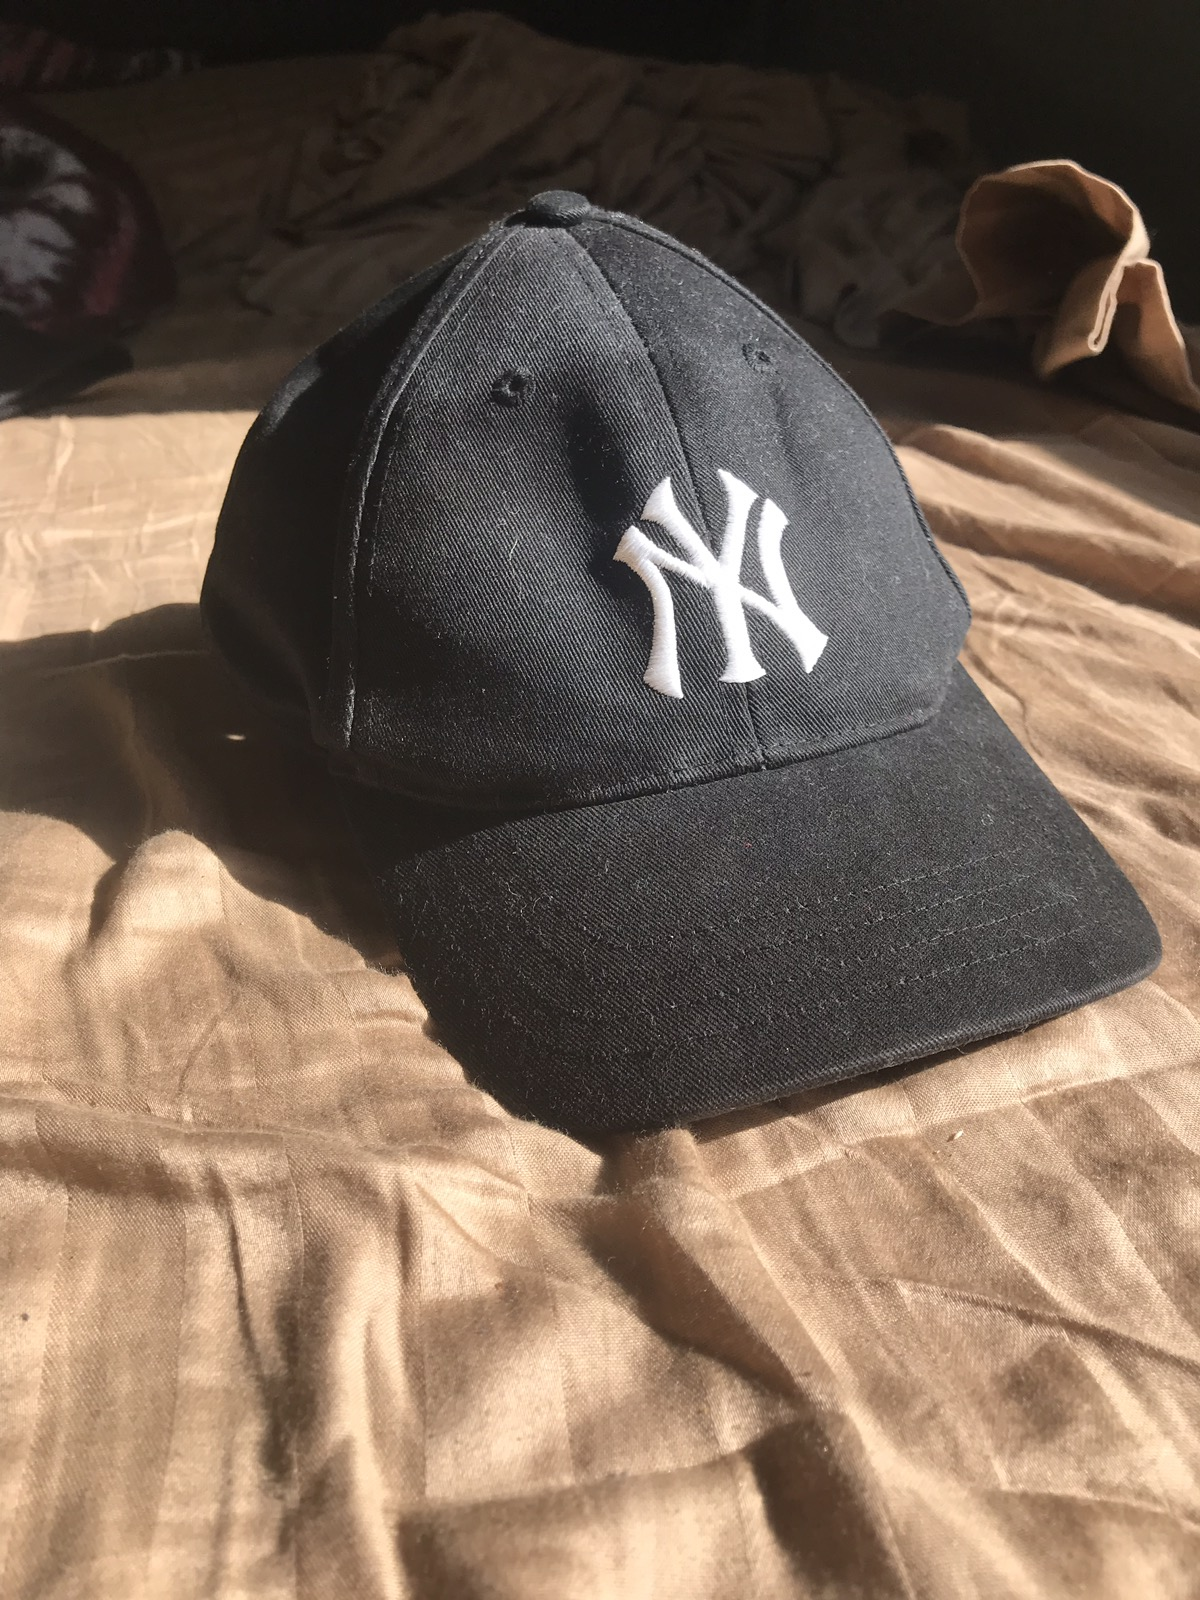 6516d1c519e Mlb Vintage NY Yankees Classic Logo Hat Size one size - Hats for Sale -  Grailed